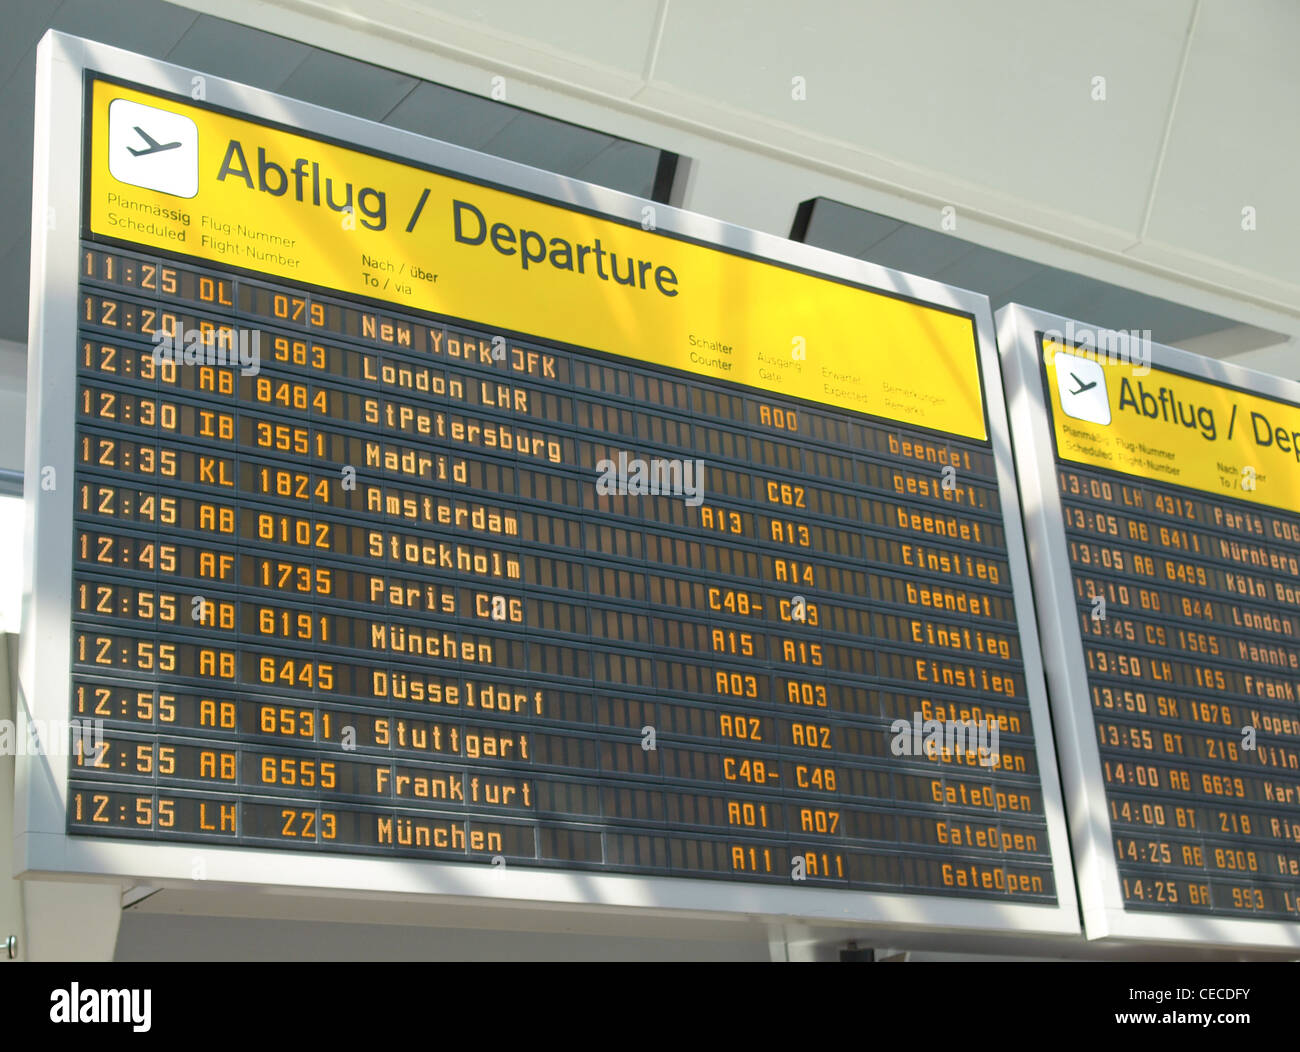 Timetable display screen of arrivals and departures at station or airport - Stock Image